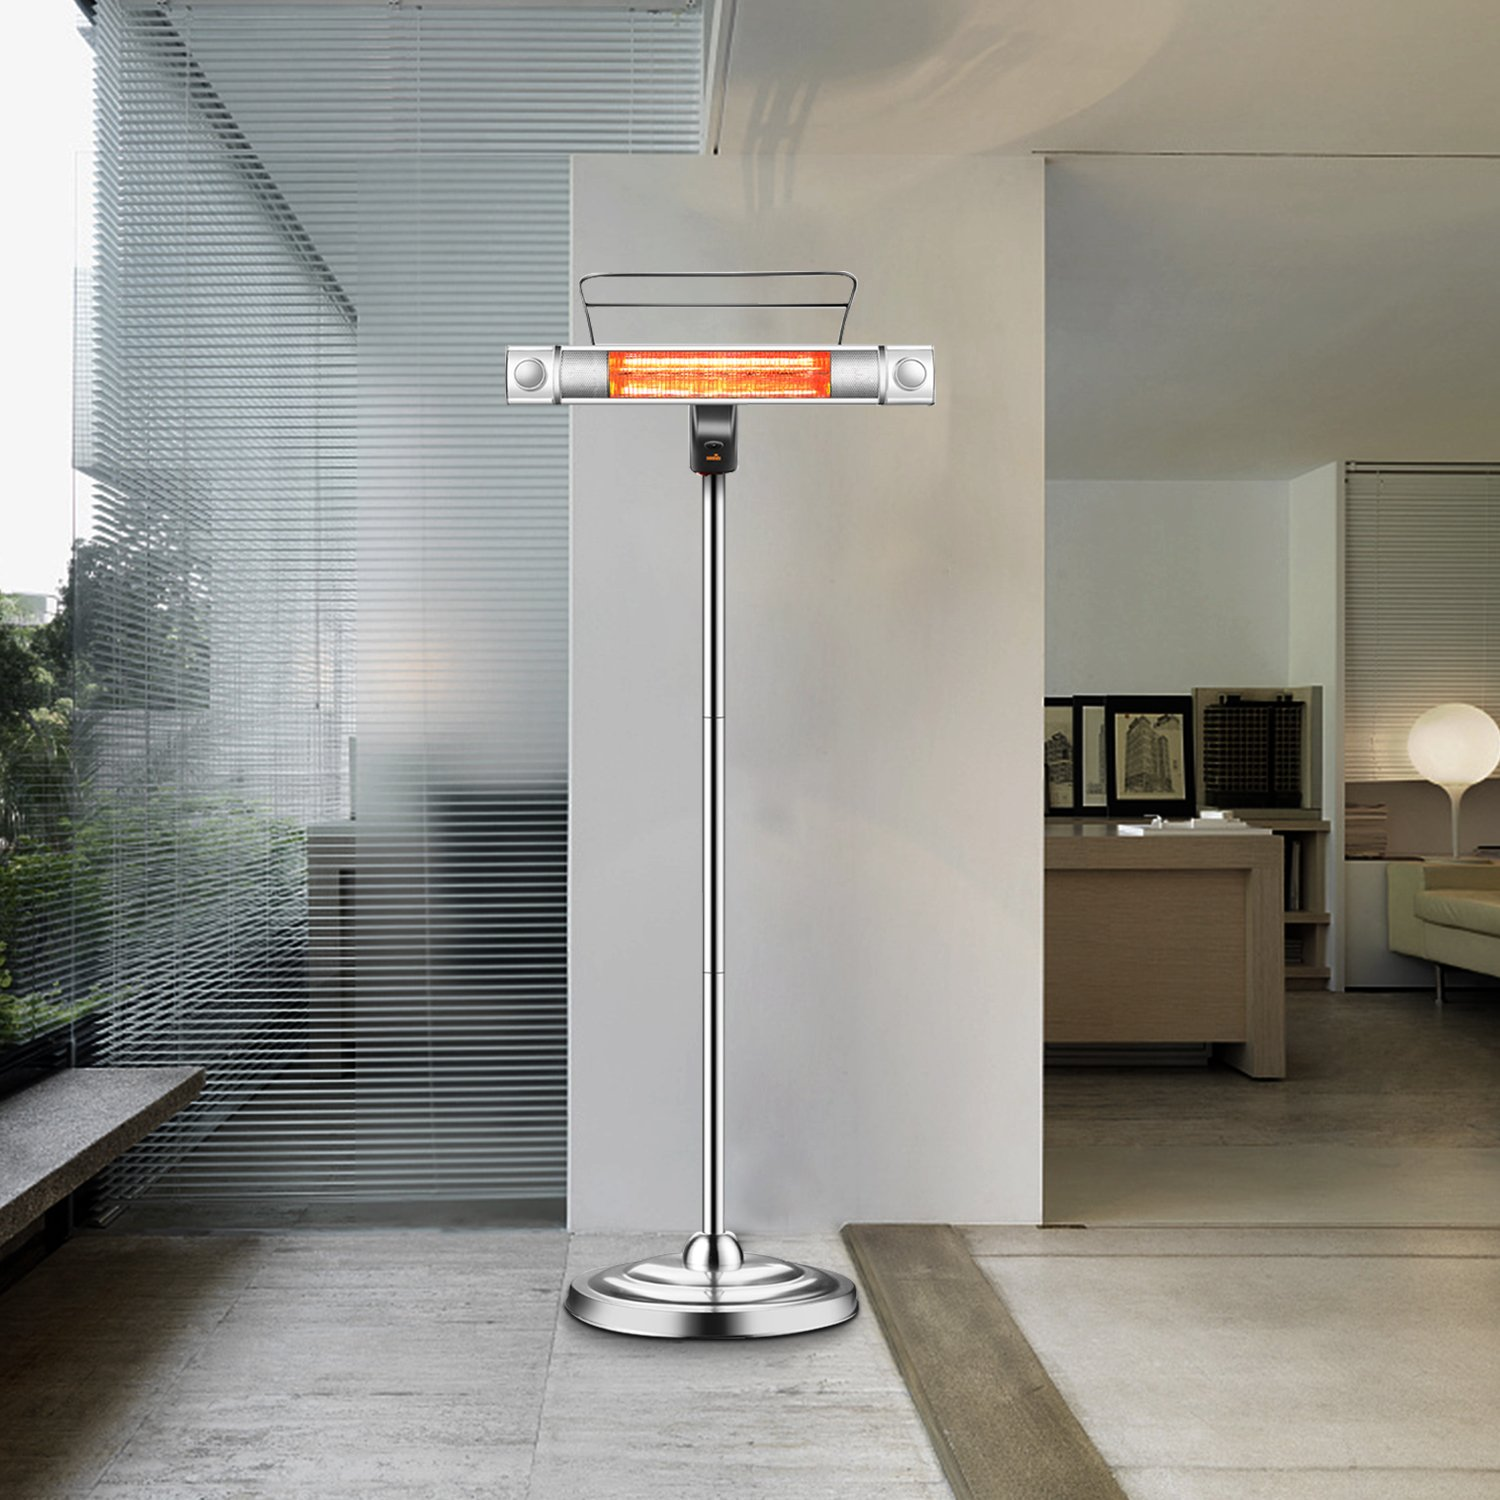 Sundate Electric Patio Heater, Infrared Heater with 2 LED Lights and Remote Control, Indoor/Outdoor Standing Heater, TH15LR by Sundate